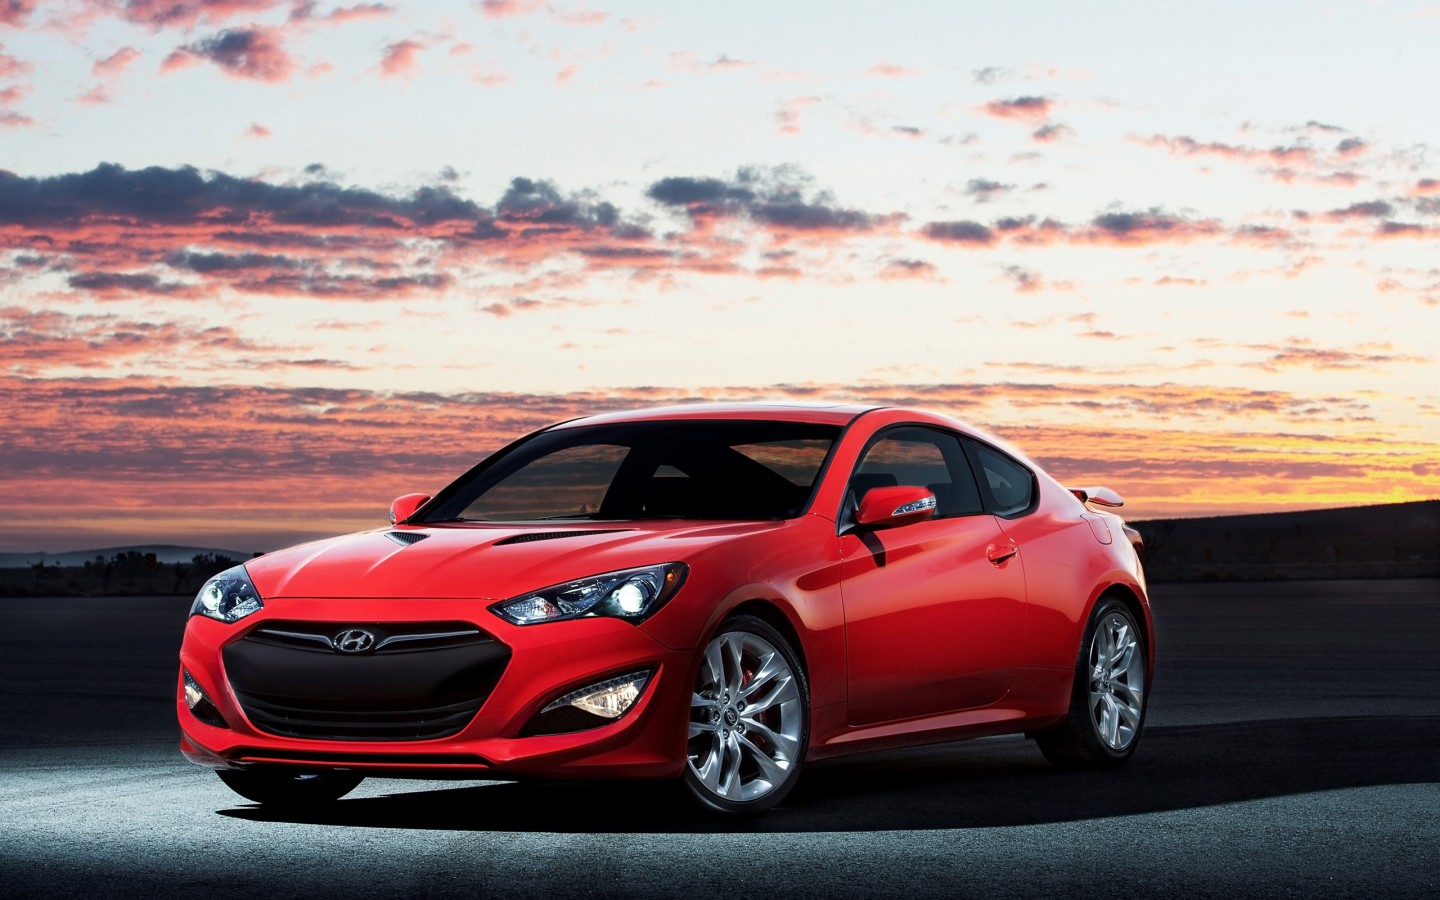 2015 hyundai genesis coupe wallpaper hd car wallpapers id 4888. Black Bedroom Furniture Sets. Home Design Ideas